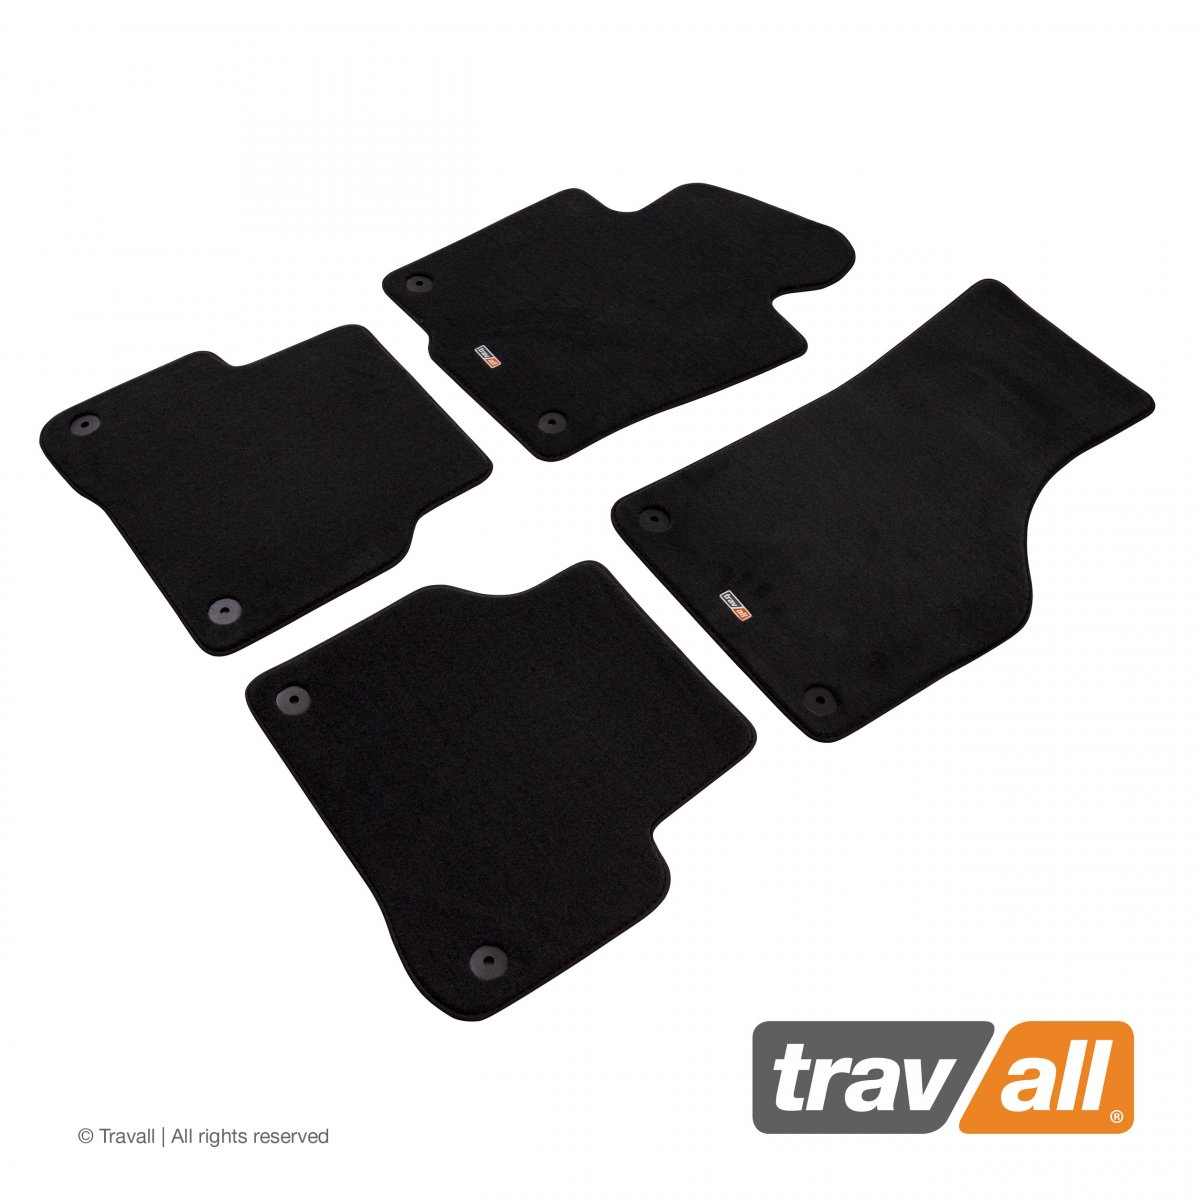 Travall® MATS [LHD] for Volkswagen Passat Saloon / Estate / CC (2010 - 2016)